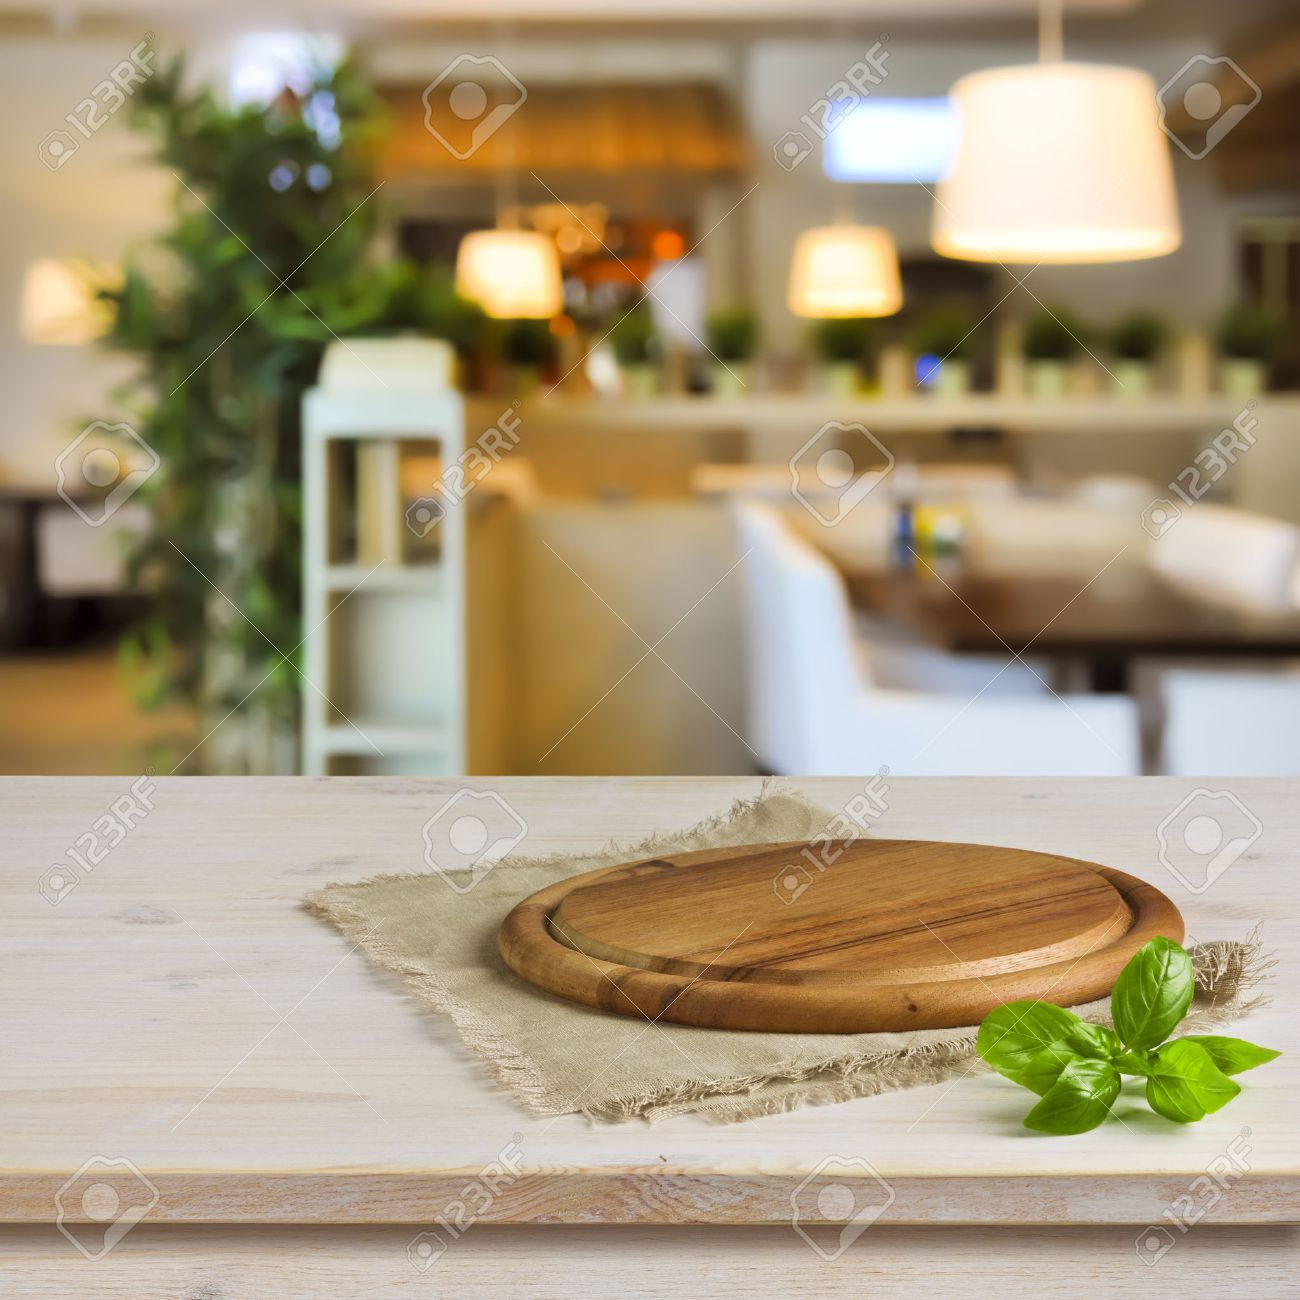 Restaurant Kitchen Background Kitchen Background Images & Stock Picturesroyalty Free Kitchen